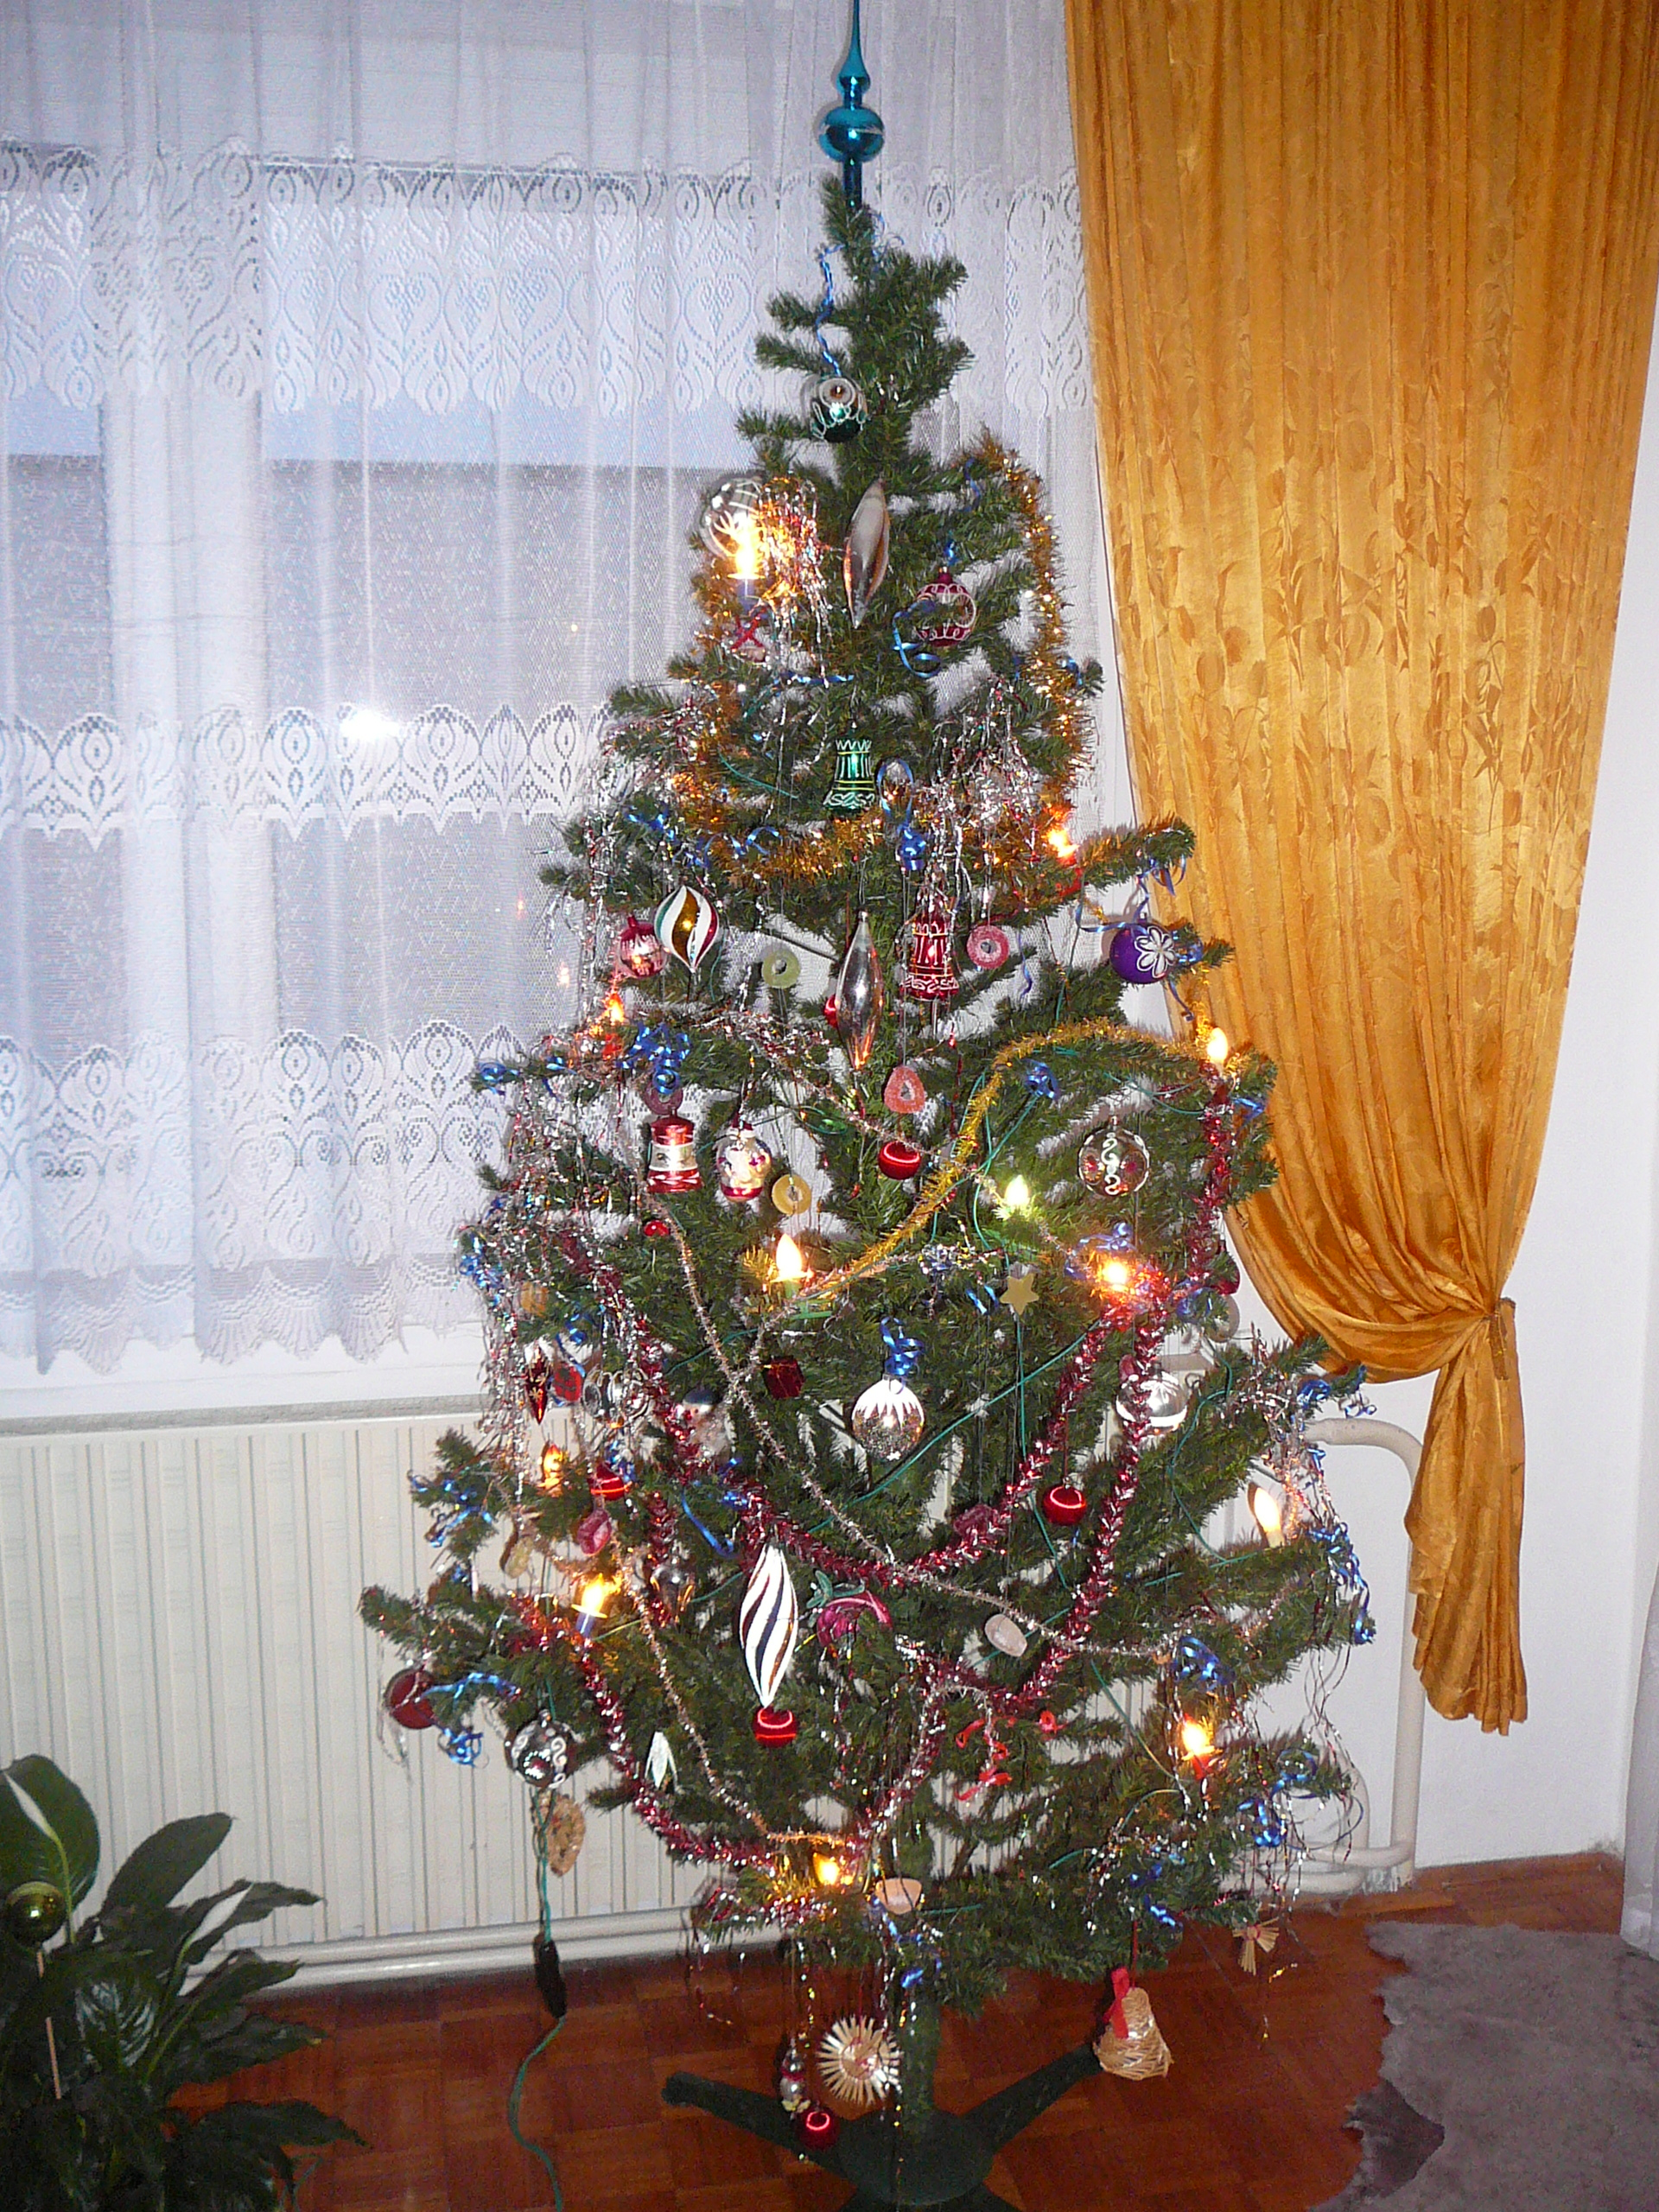 File:Artificial Christmas tree.jpg - Wikimedia Commons